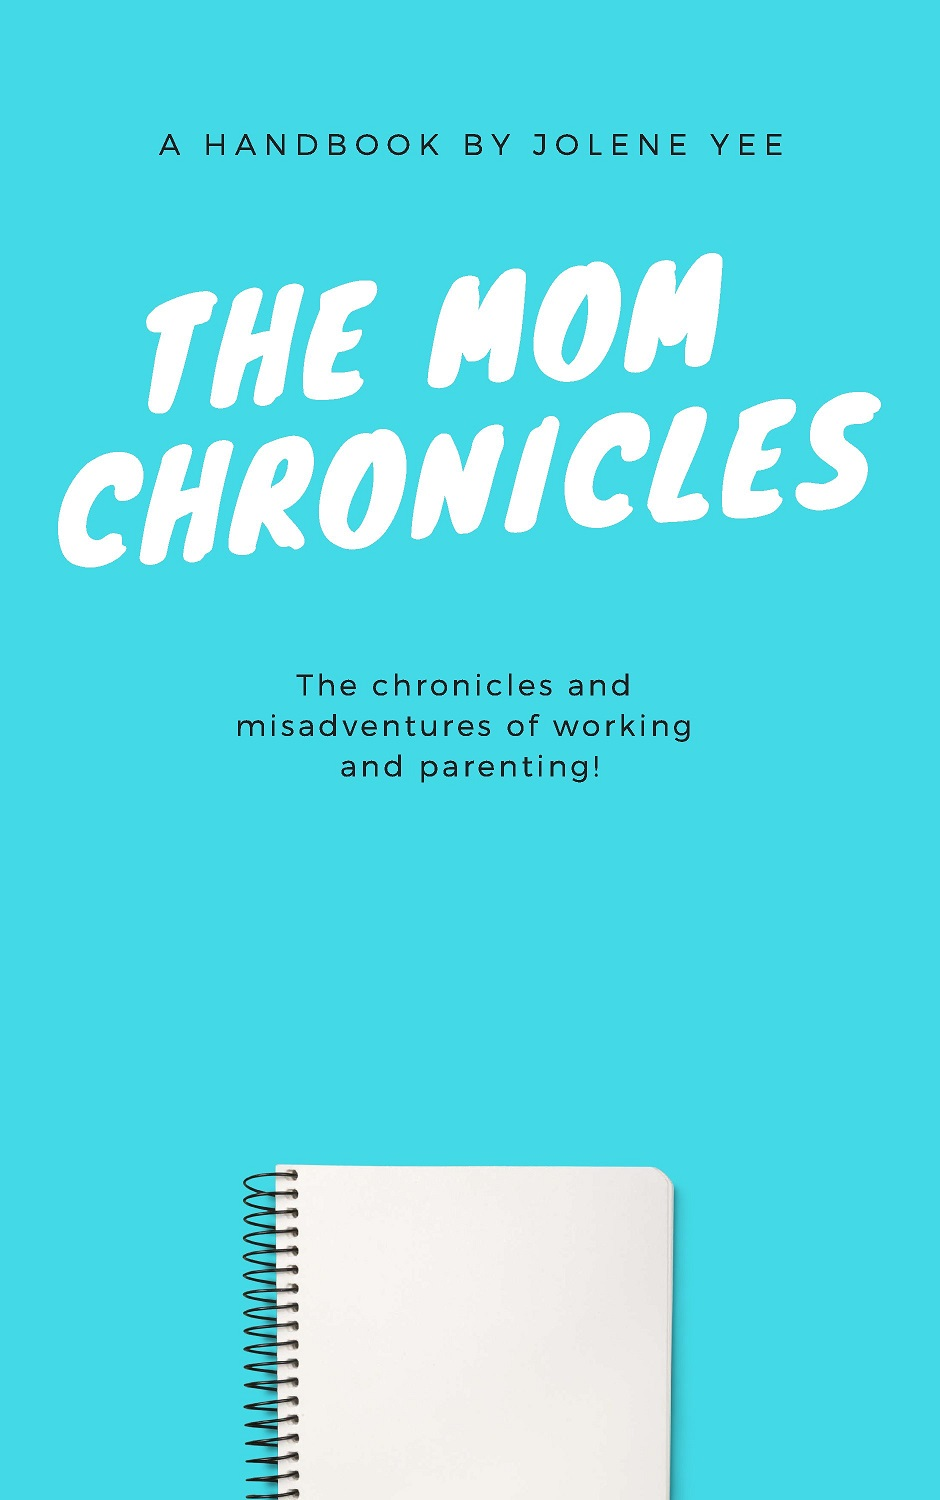 The-Mom-Chronicles-ilovepdf-compressed-pdf.jpg